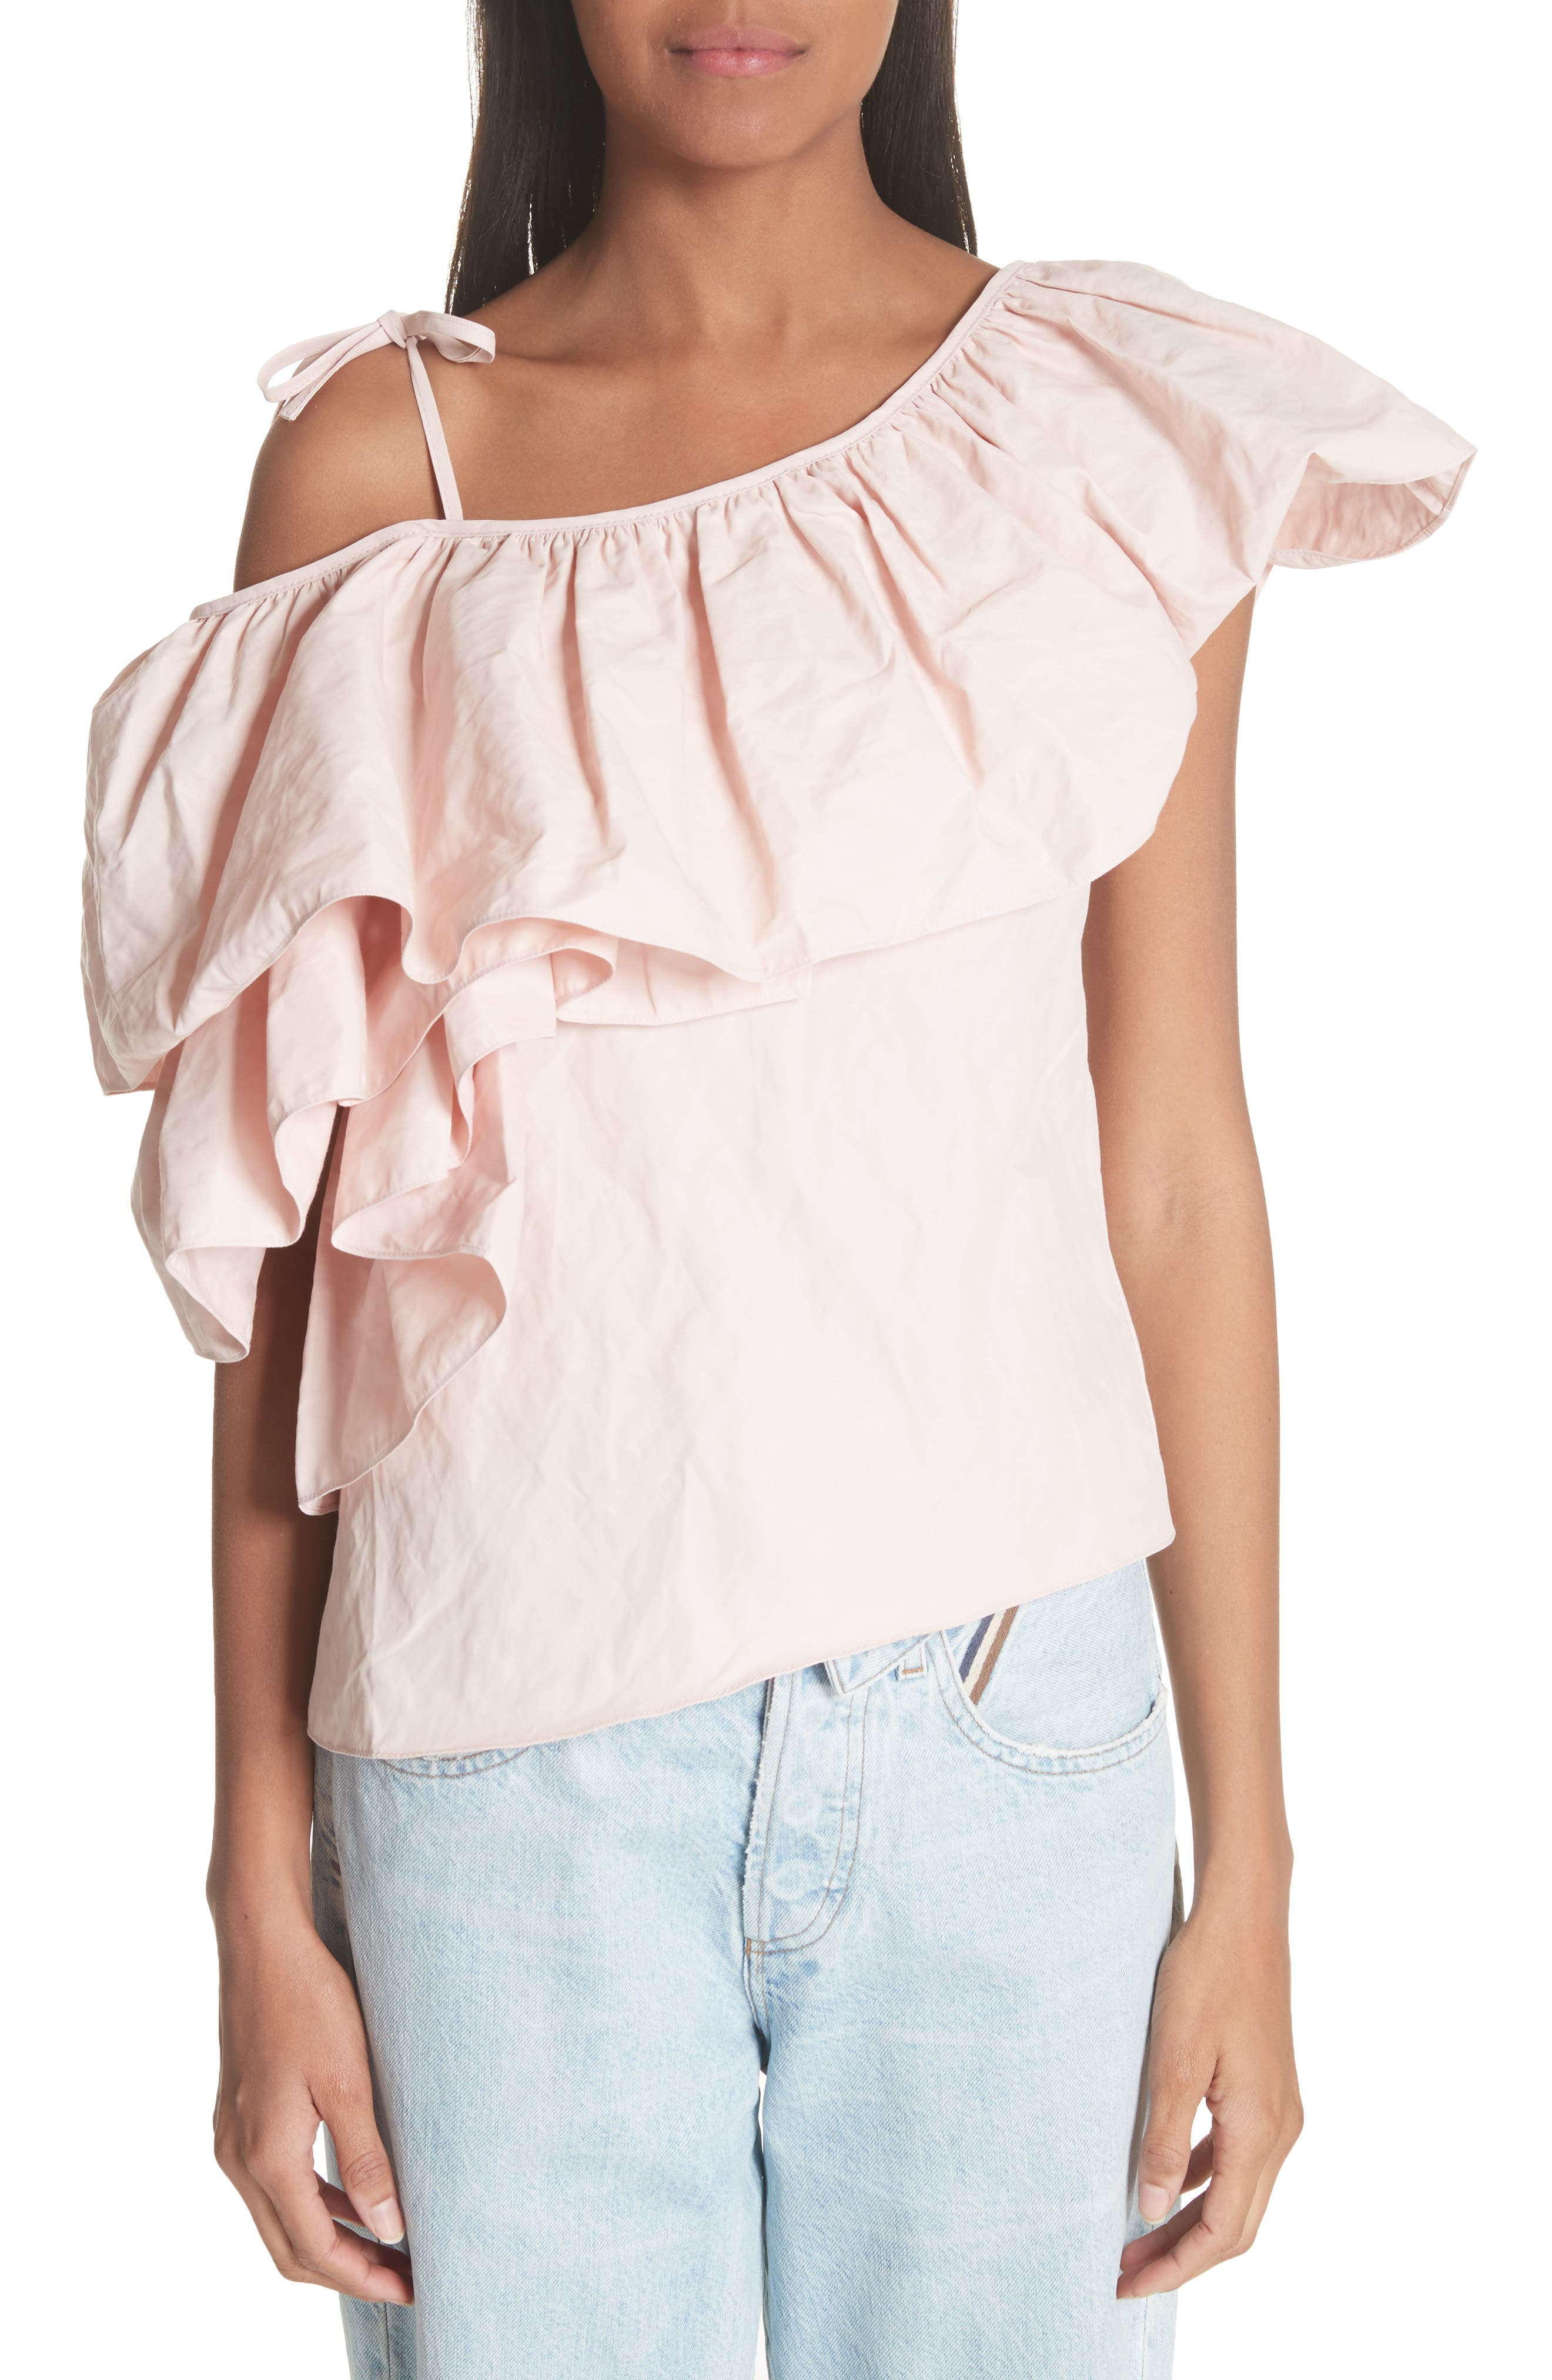 Marques'Almeida One Shoulder Ruffle Top,                         Main,                         color, 650